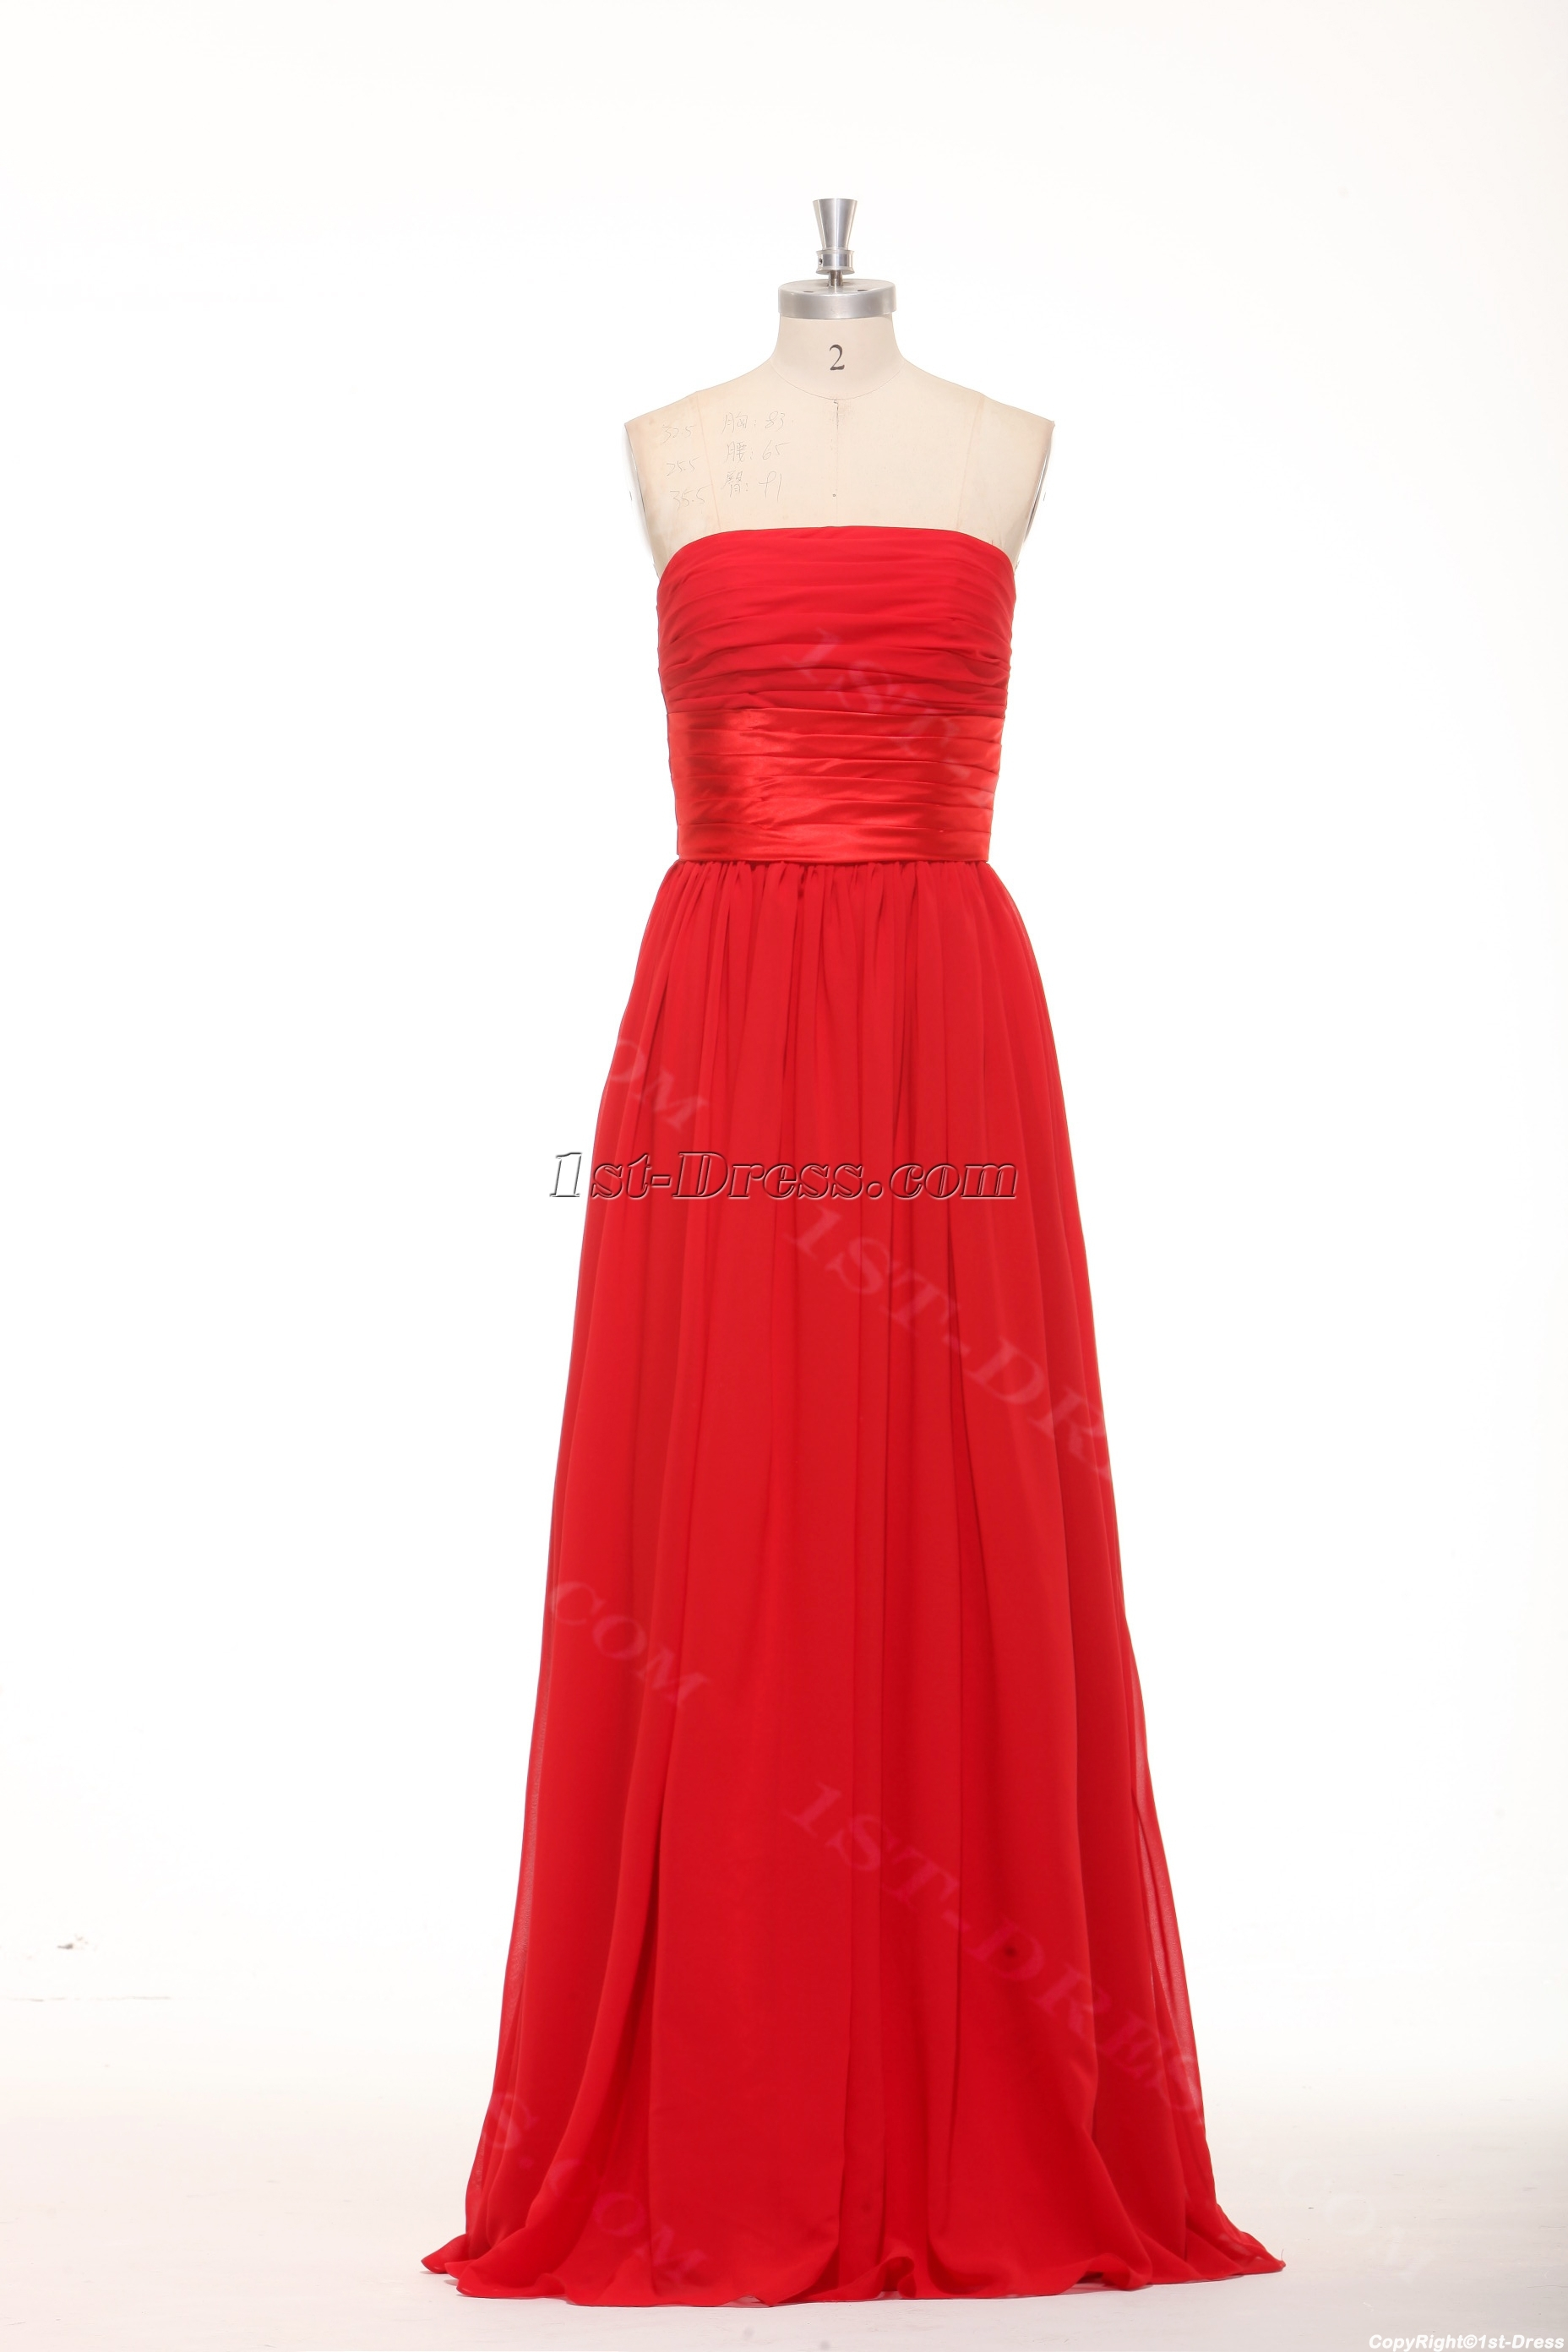 d397821c4eb Plus Size Formal Dresses Red - Data Dynamic AG